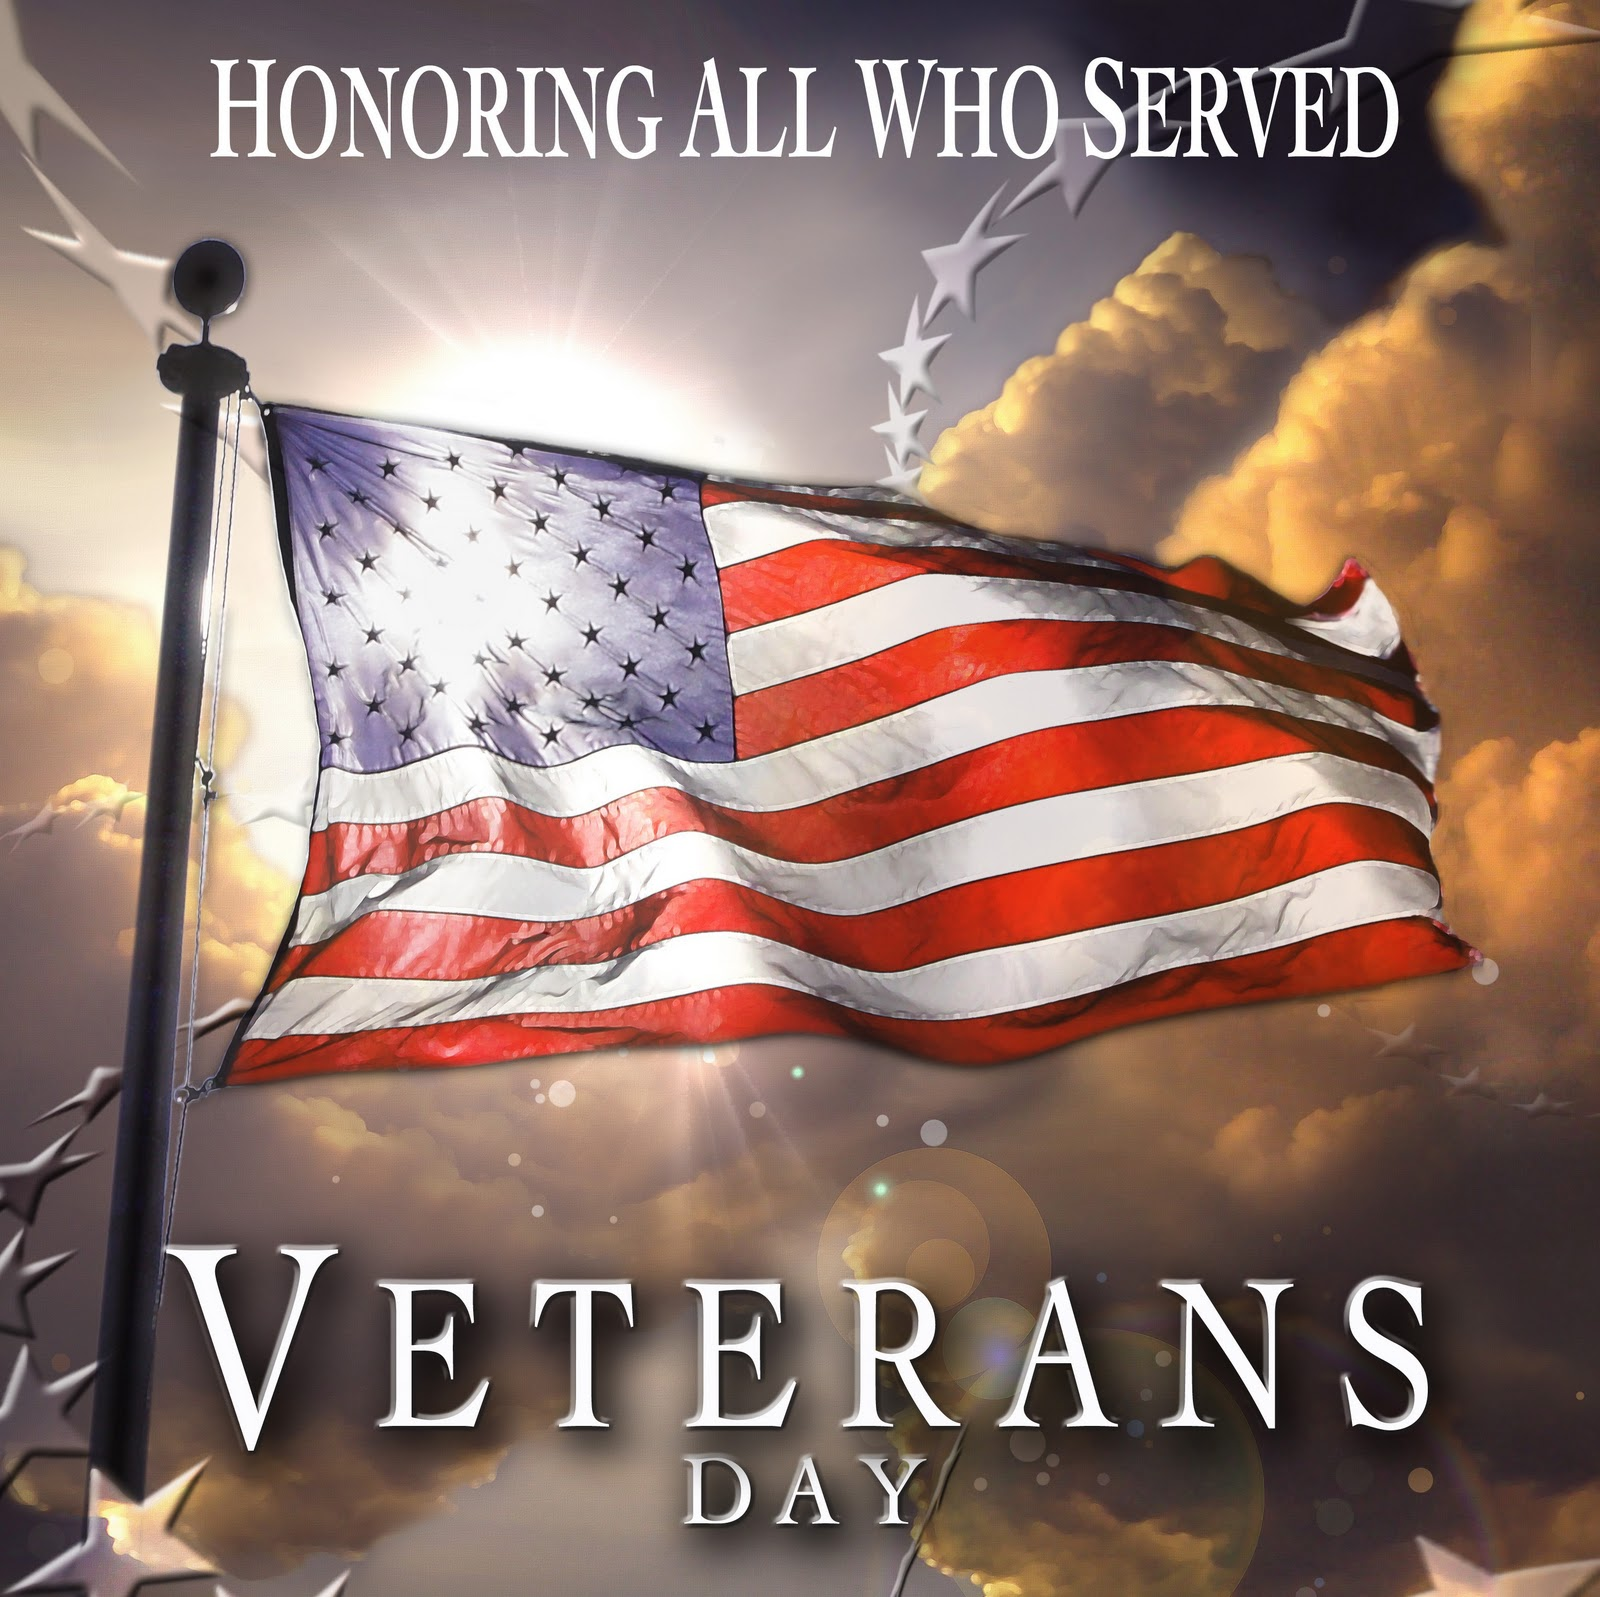 veterans_day_2007_poster1a.jpg